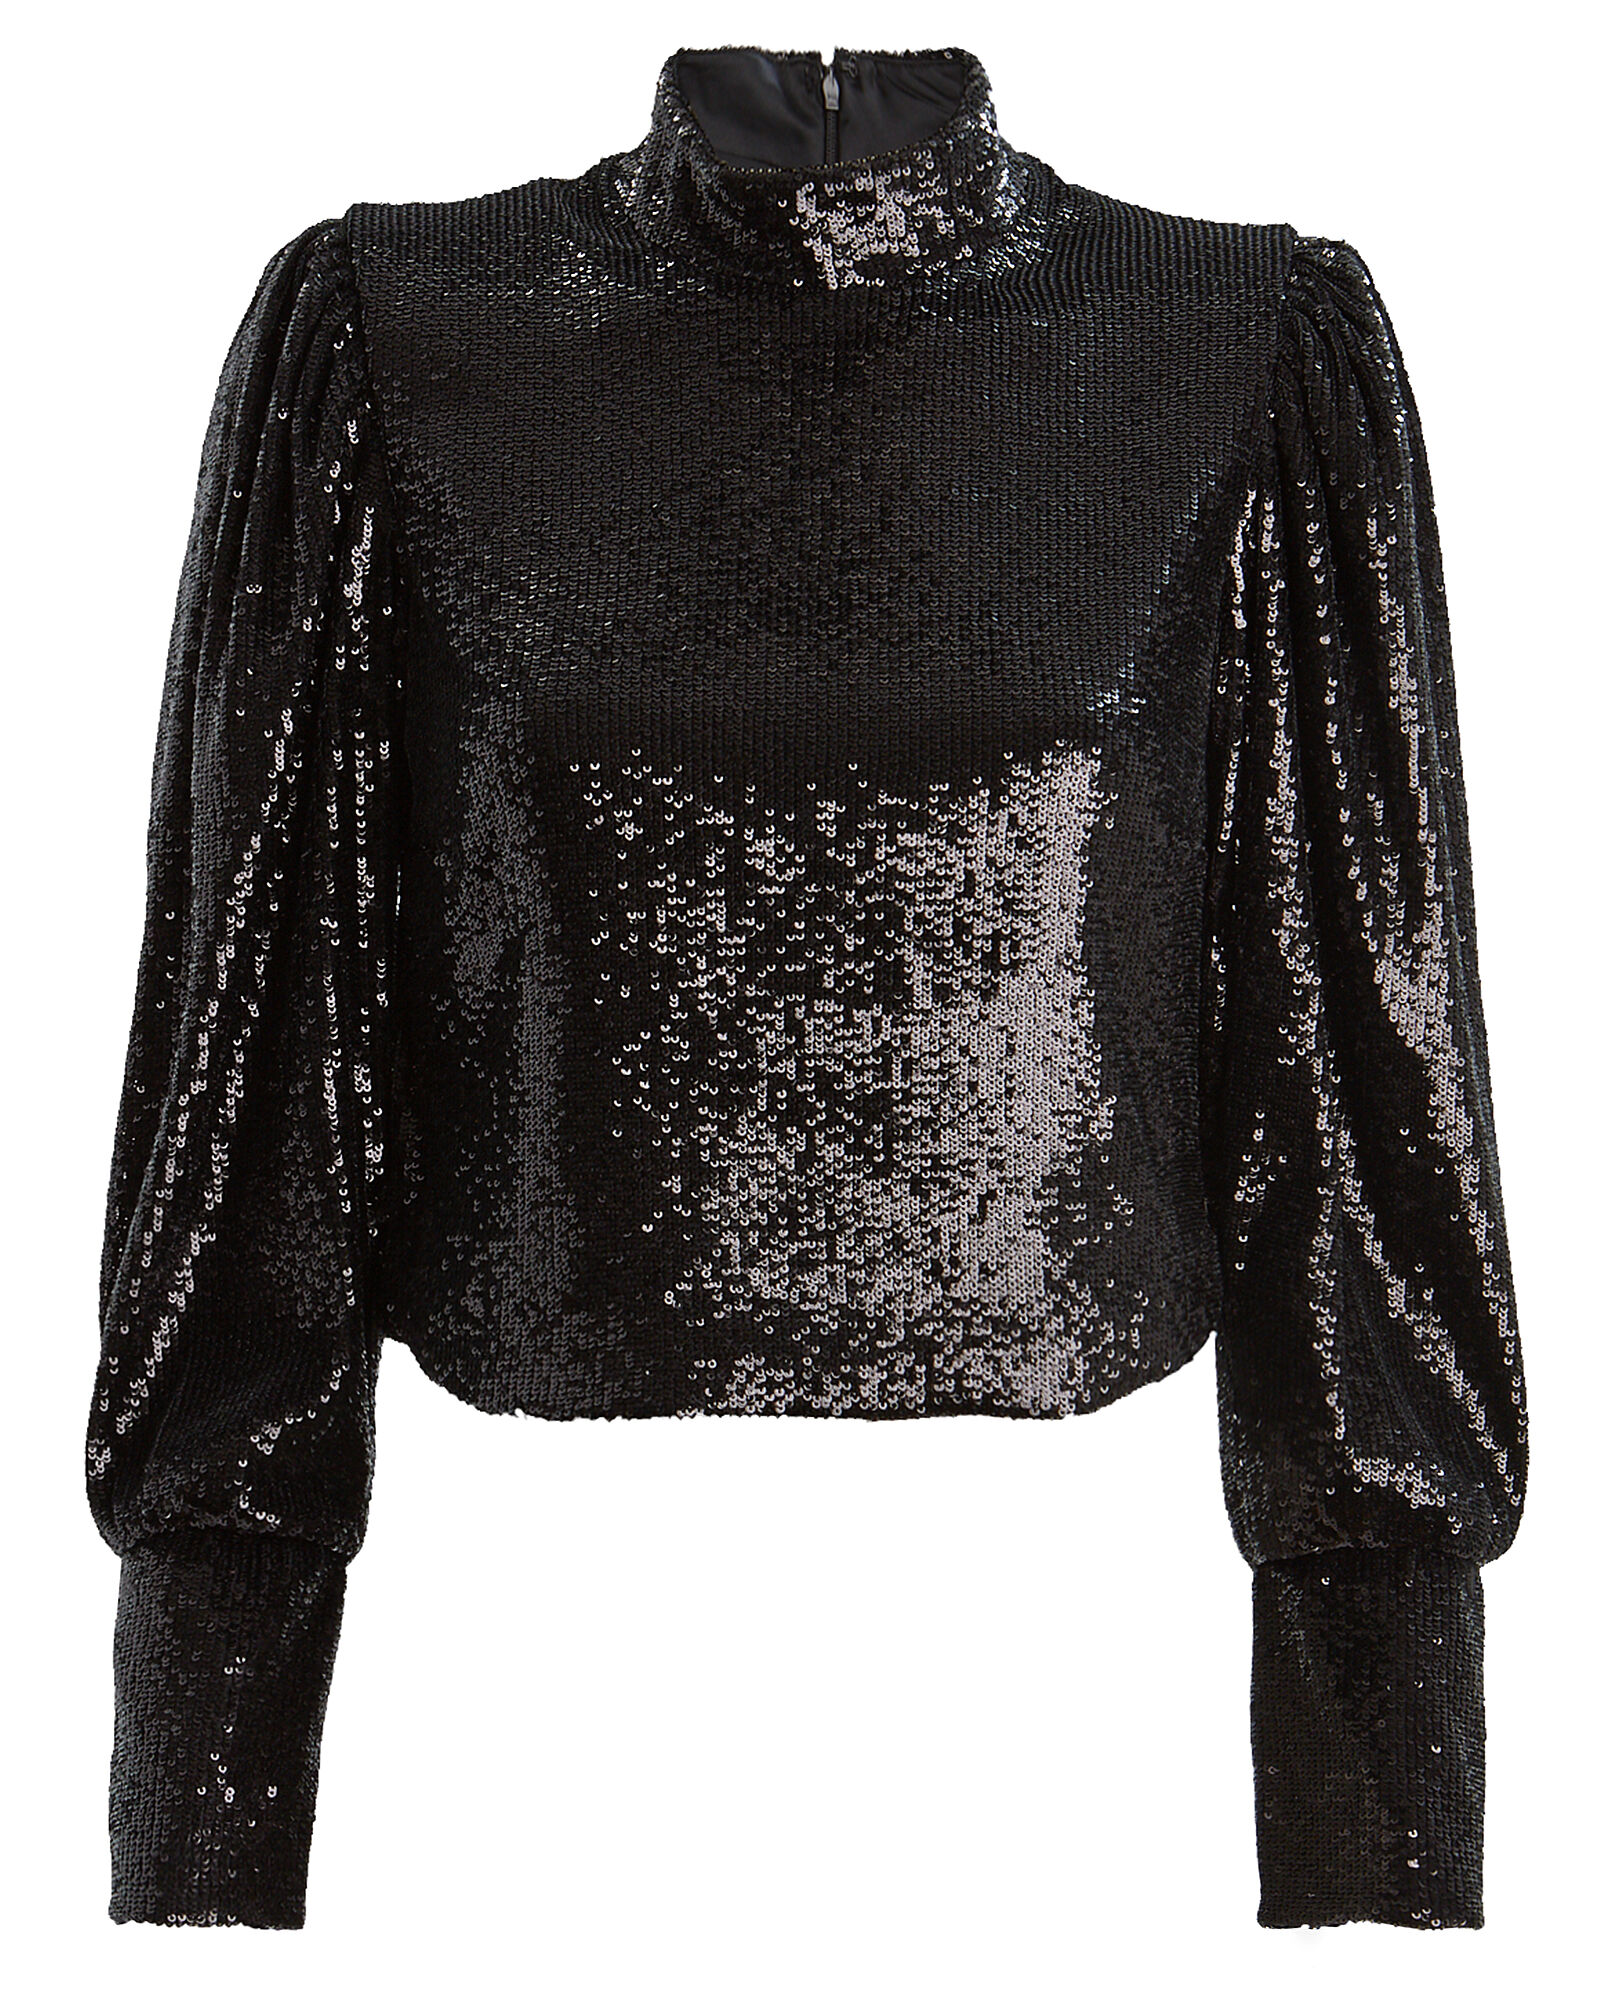 Margaret Sequin High Neck Blouse, BLACK, hi-res